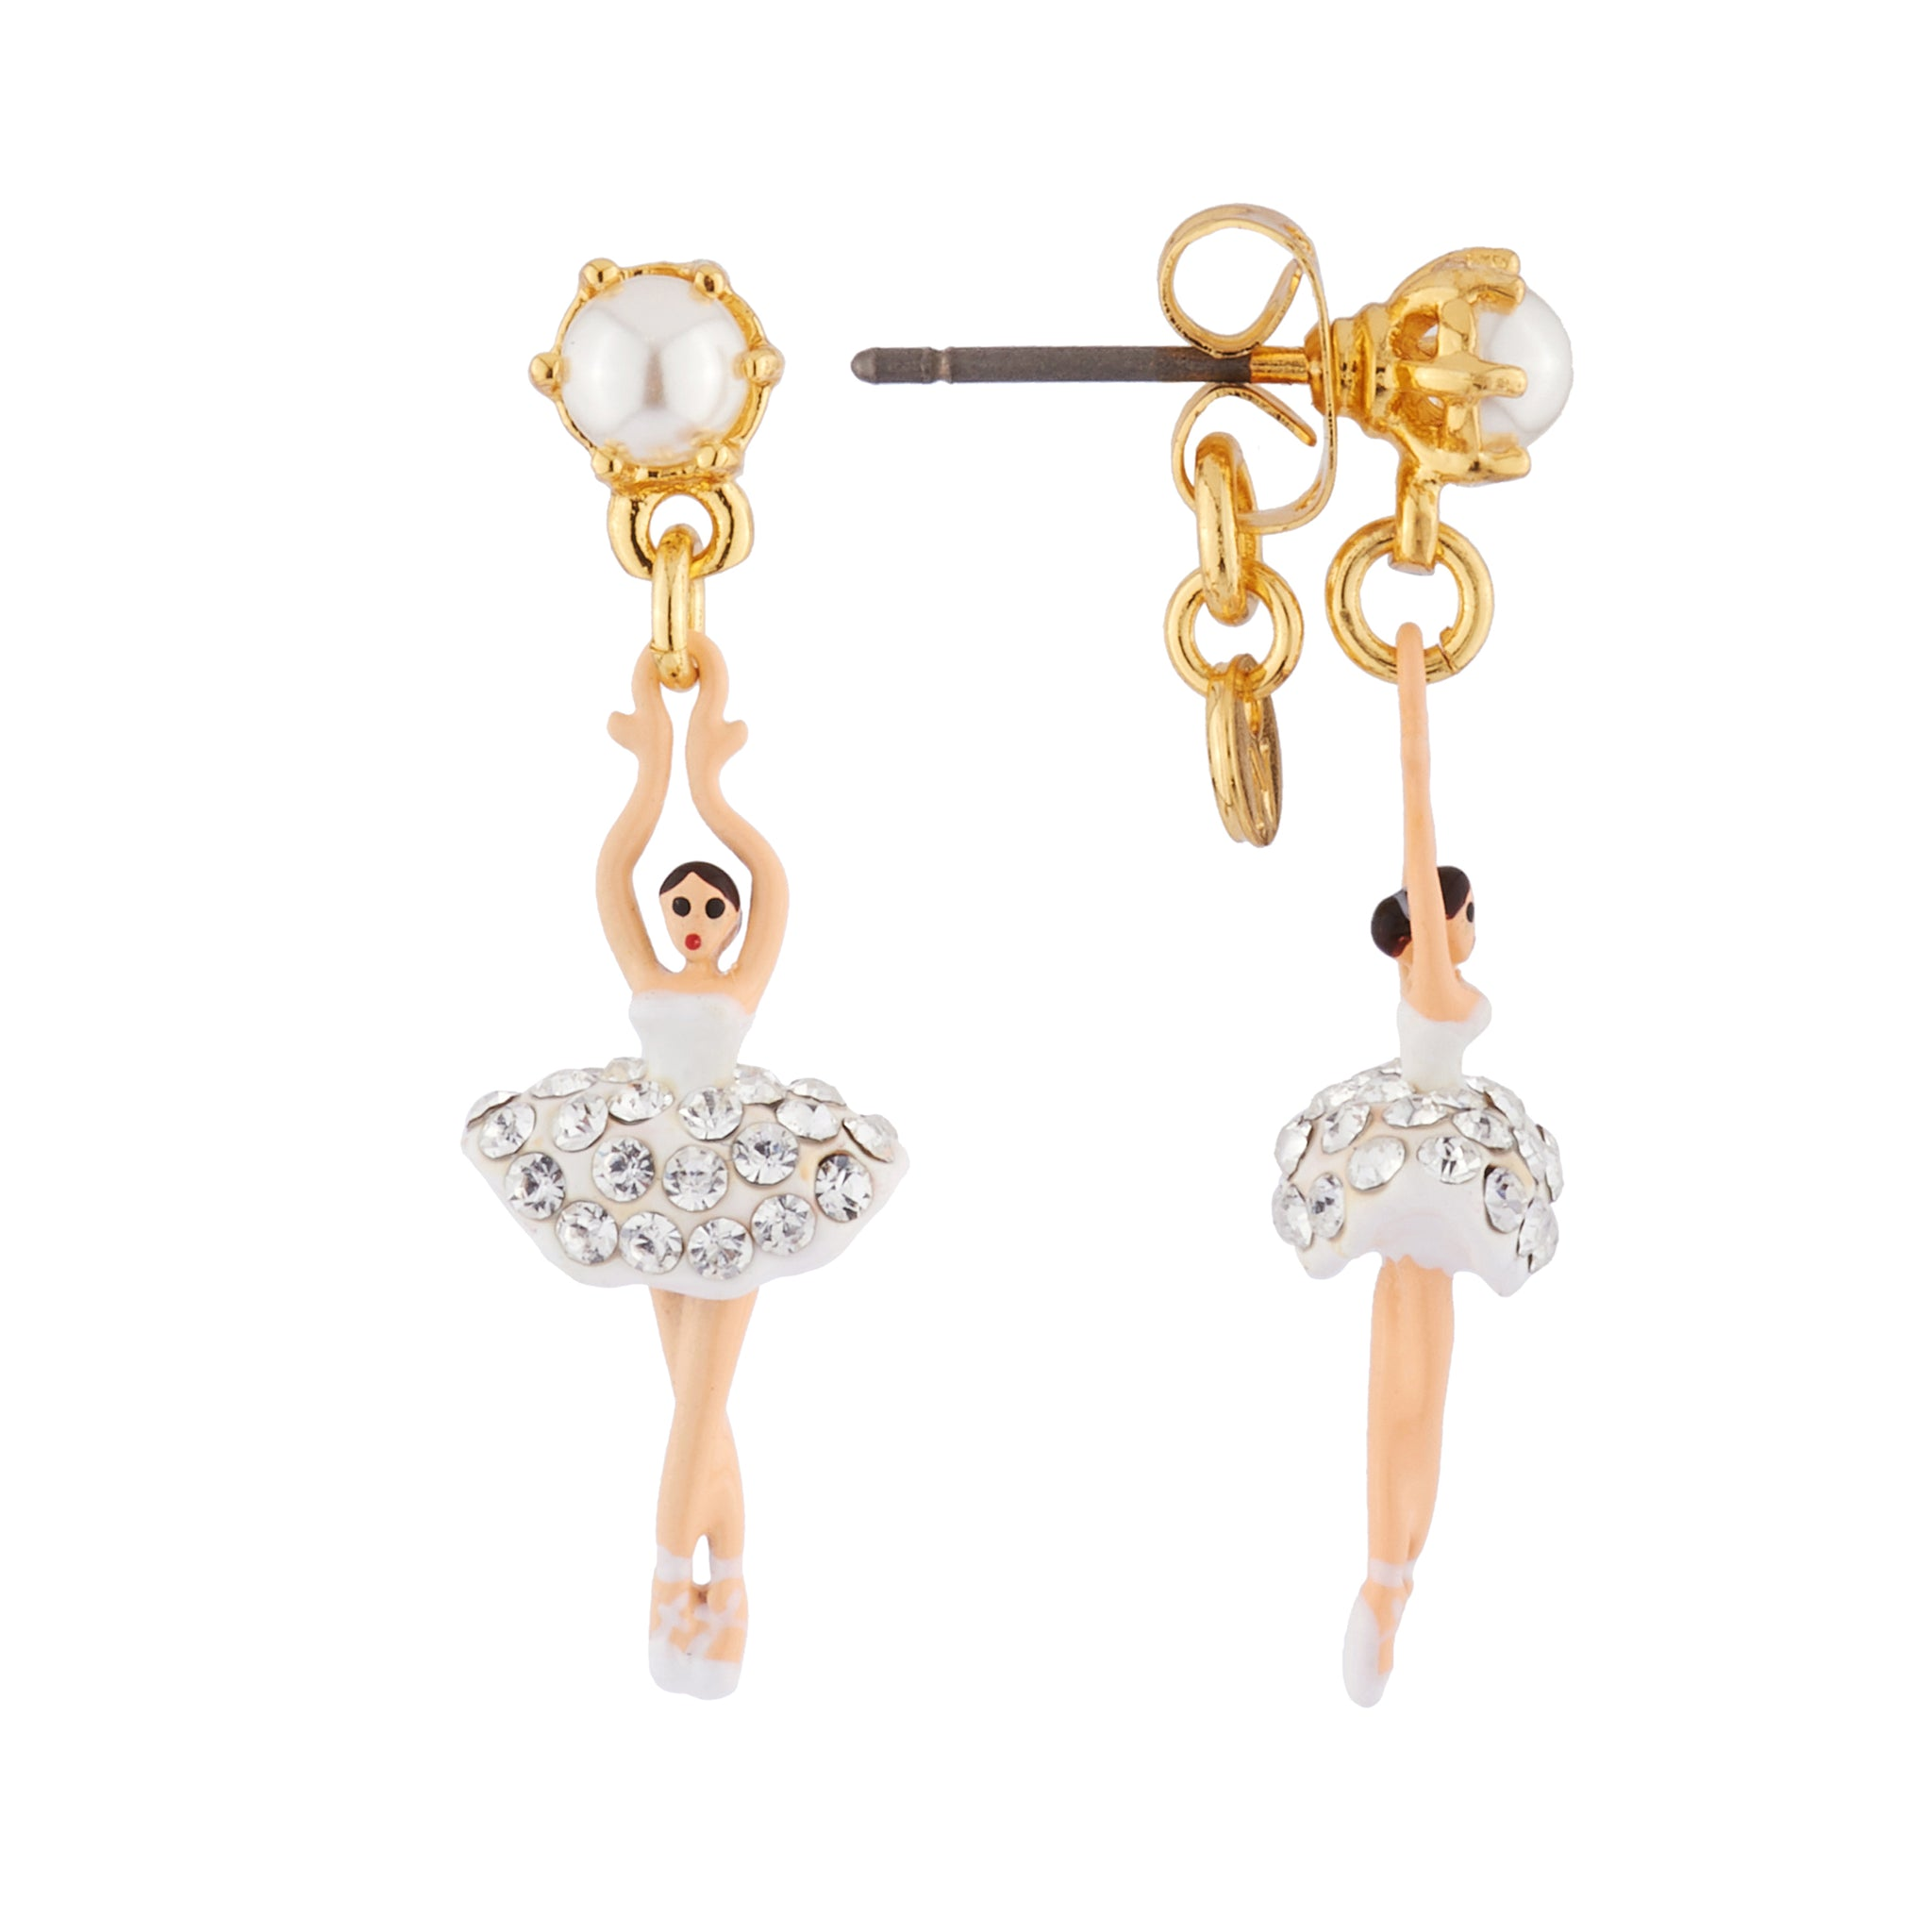 White mini Ballerina Stud Earrings with Rhinestones and Pearl